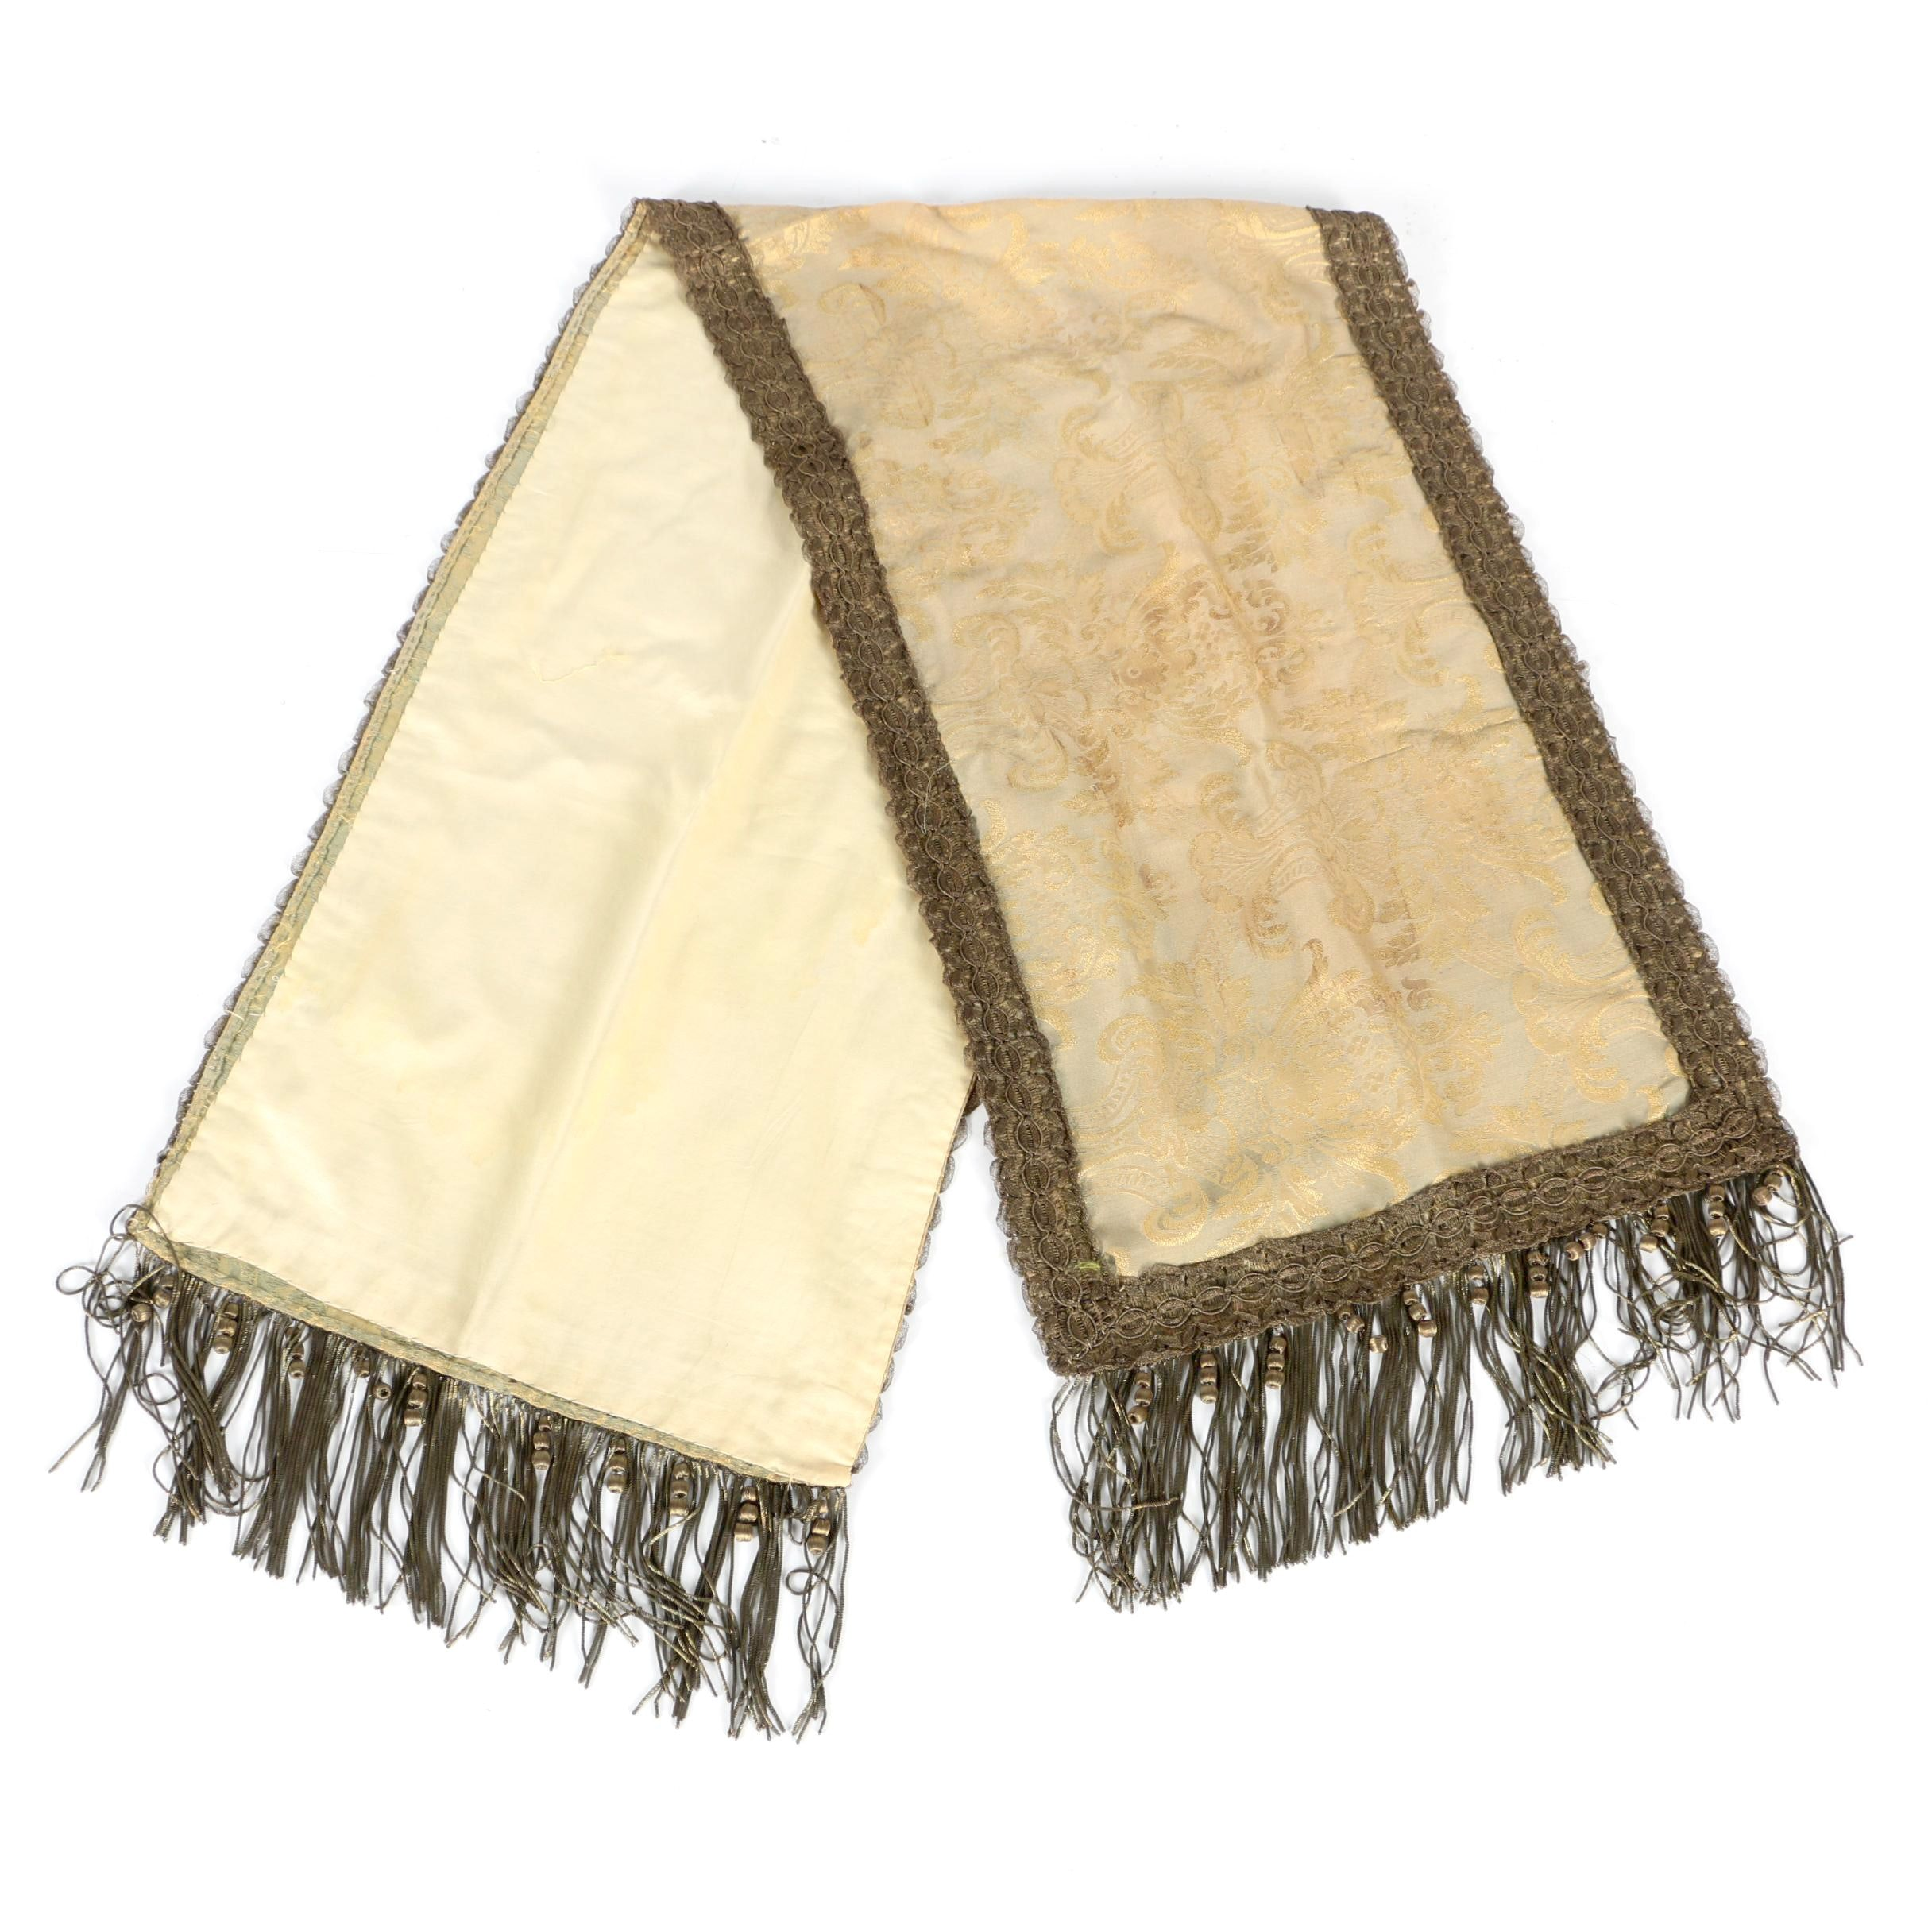 Metallic Damask Table Runner With Trim and Fringe